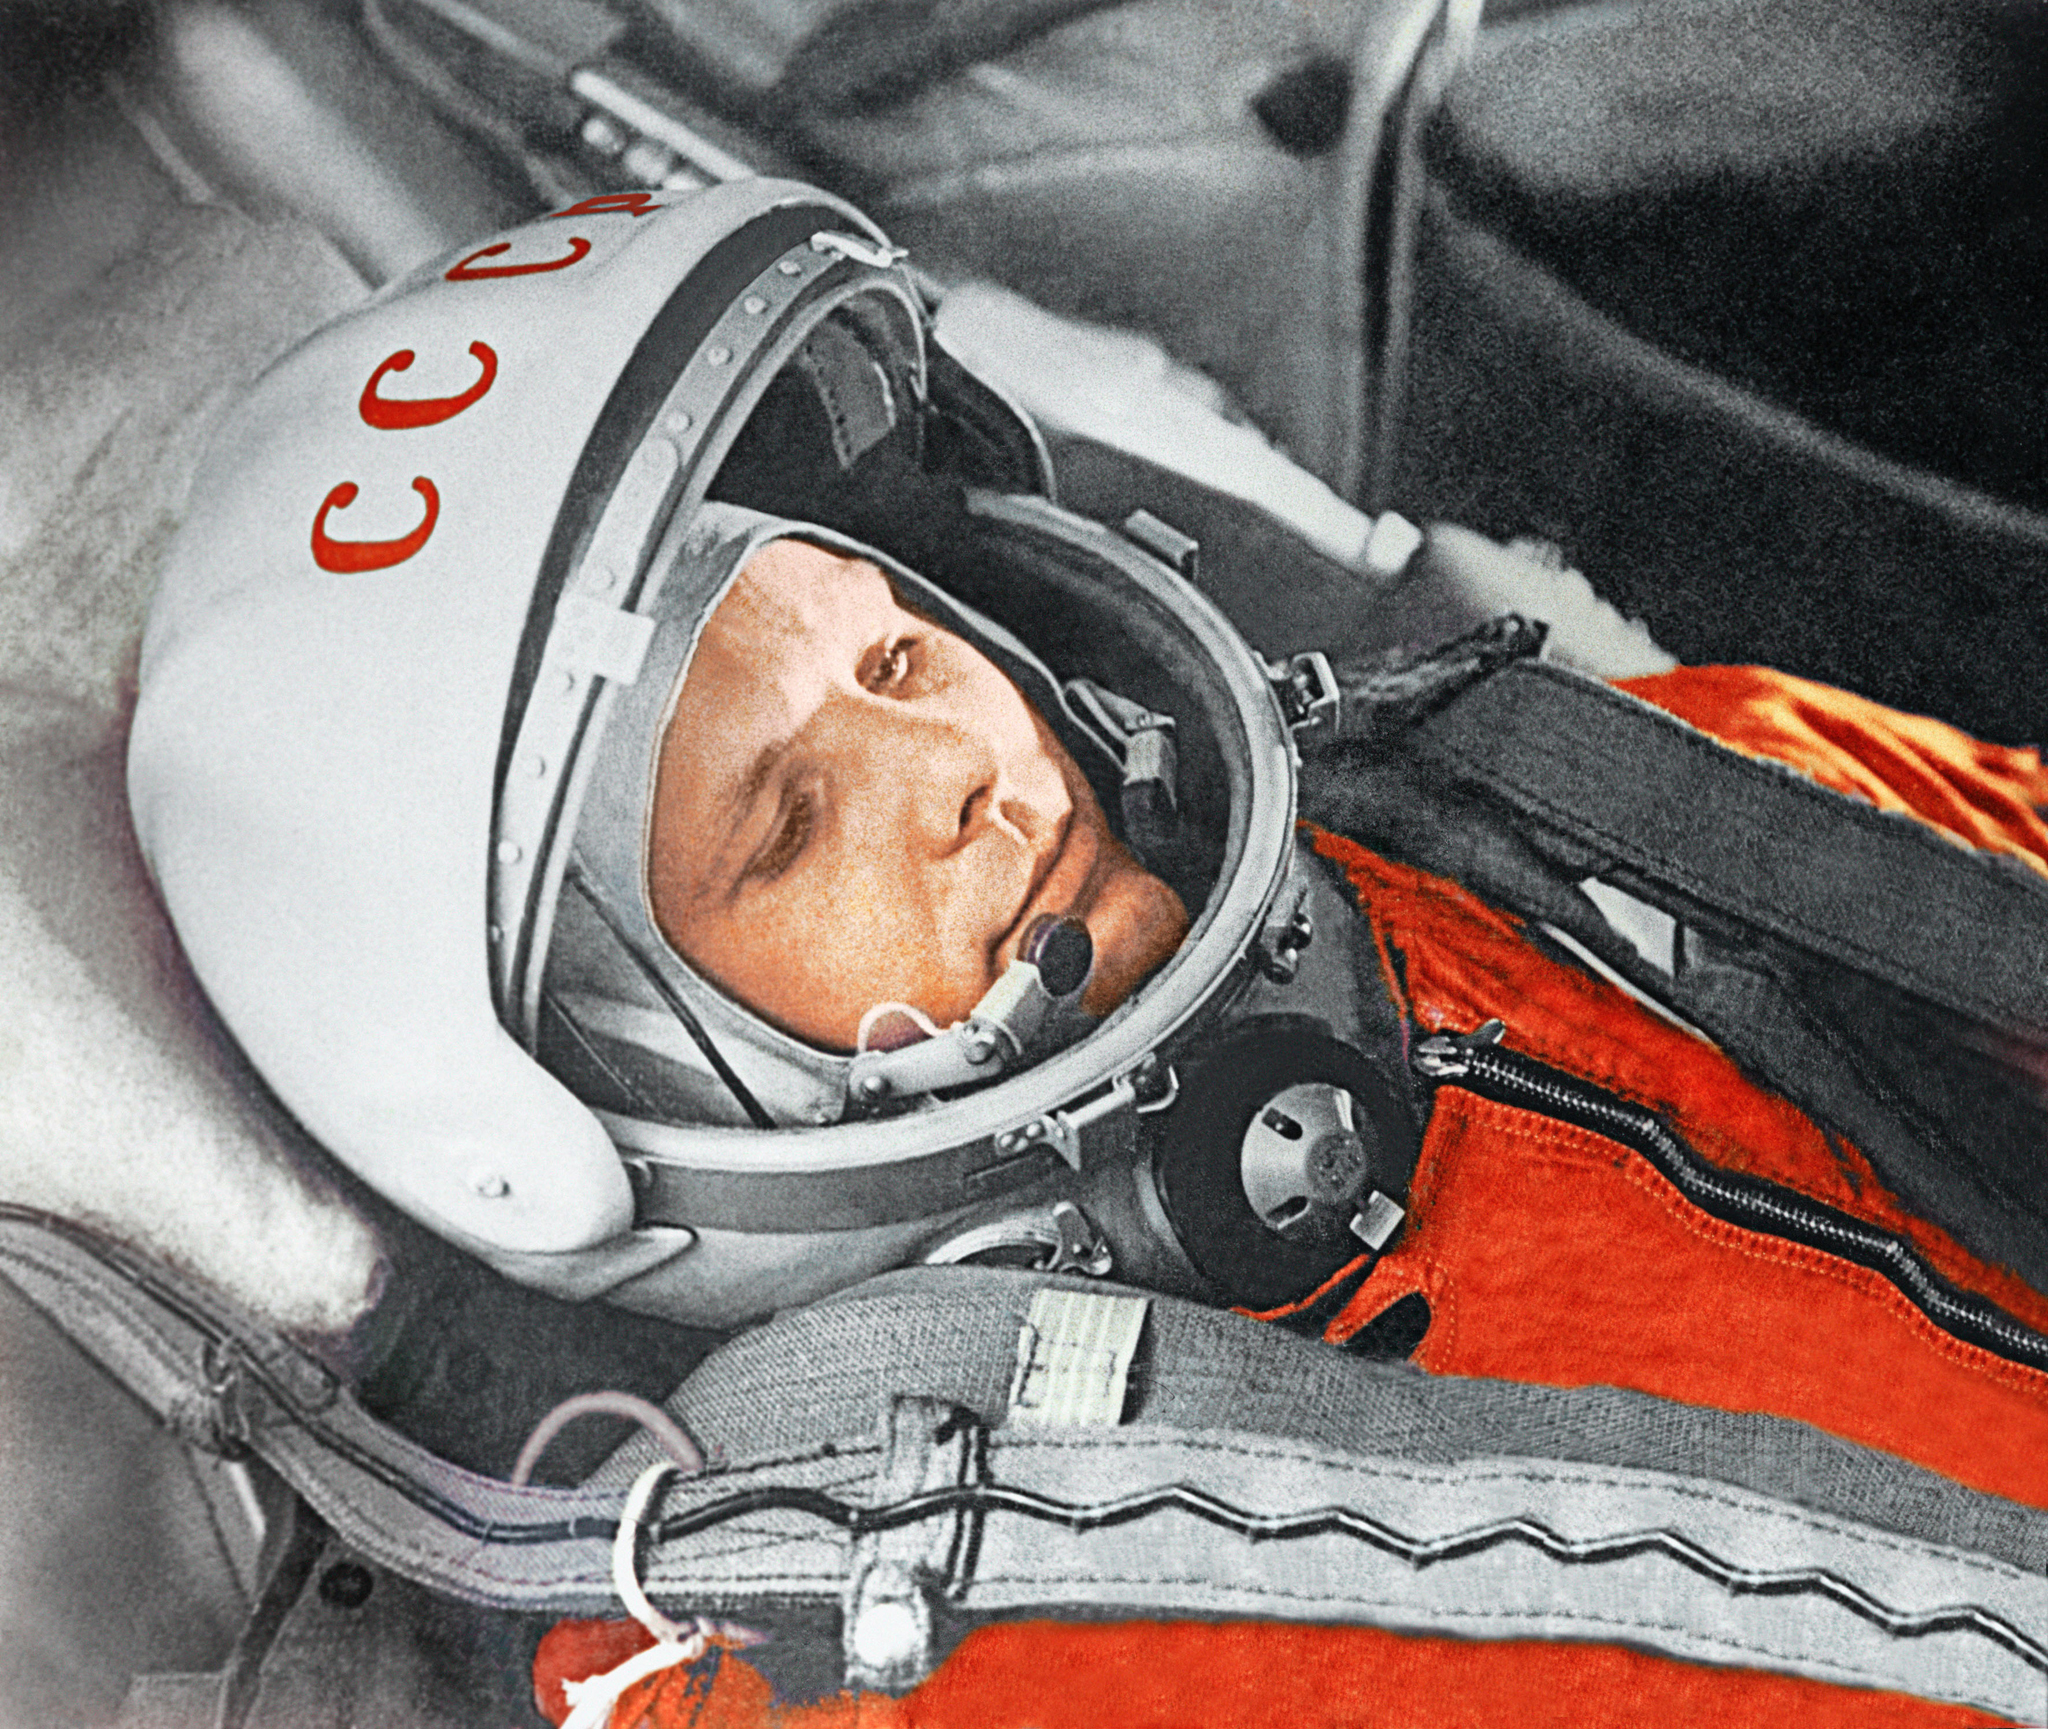 (Yuri Gagarin before the first space flight, April 12 1961, c. RIA Novosti)